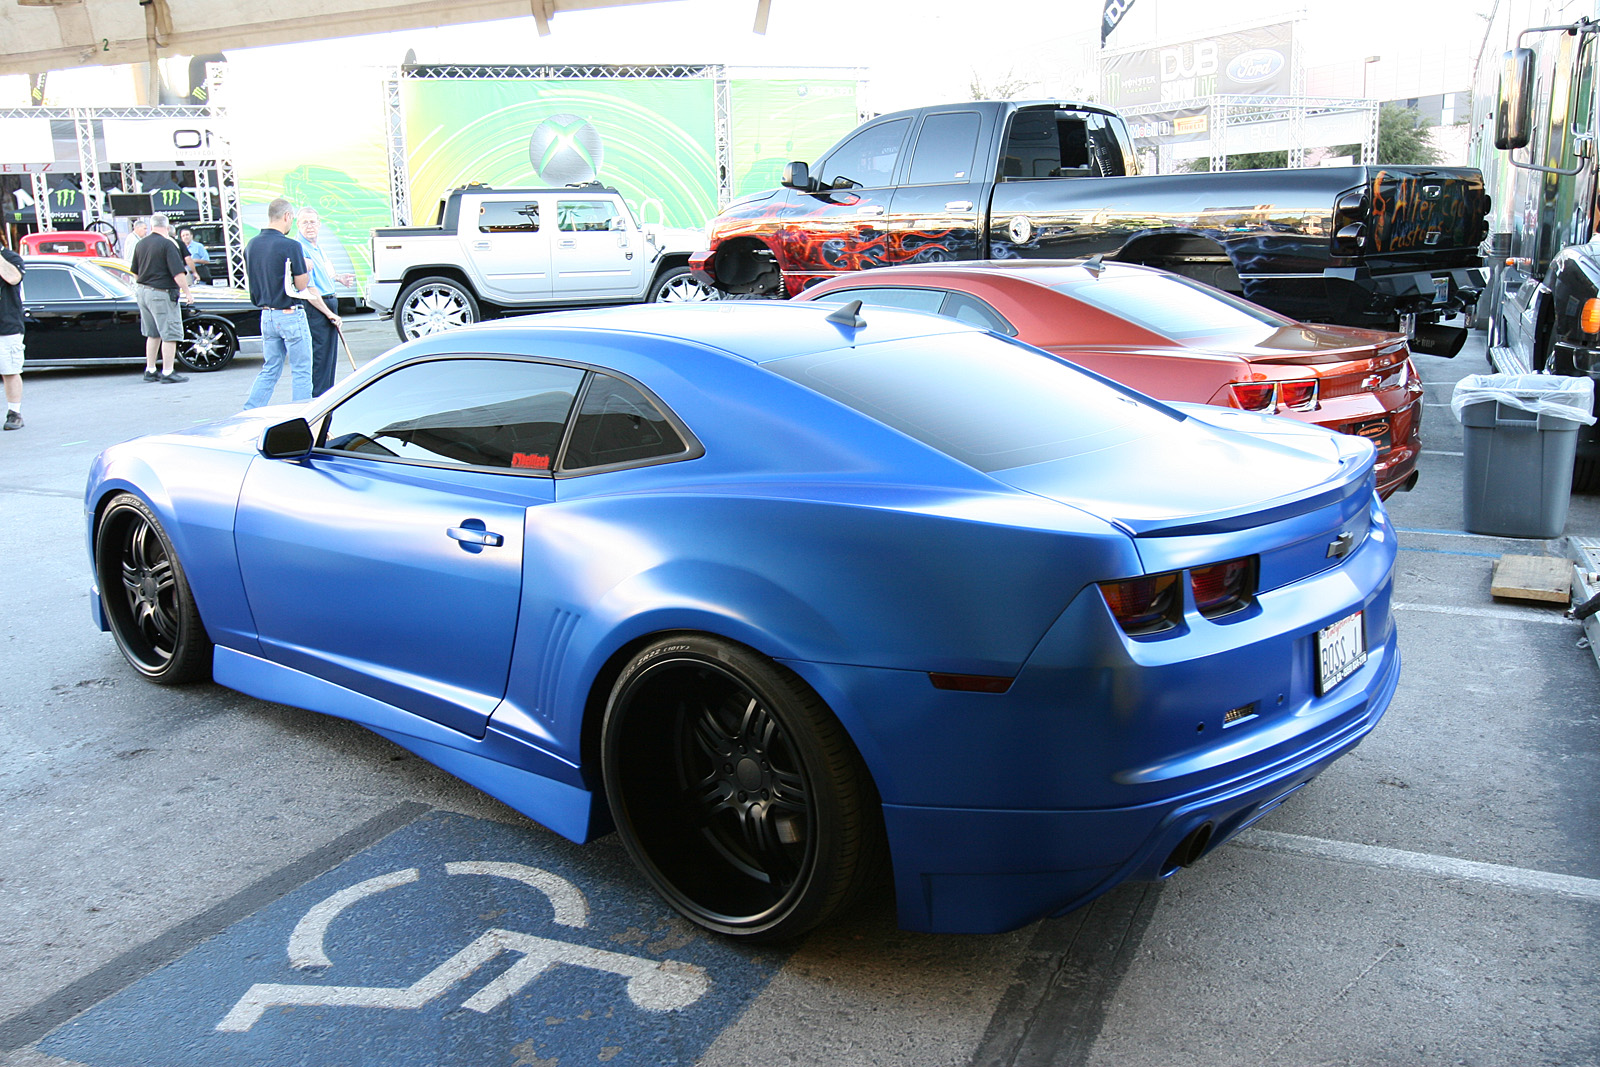 Matte Blue Chevy Camaro Widebody ~ Modified Cars And Auto ...